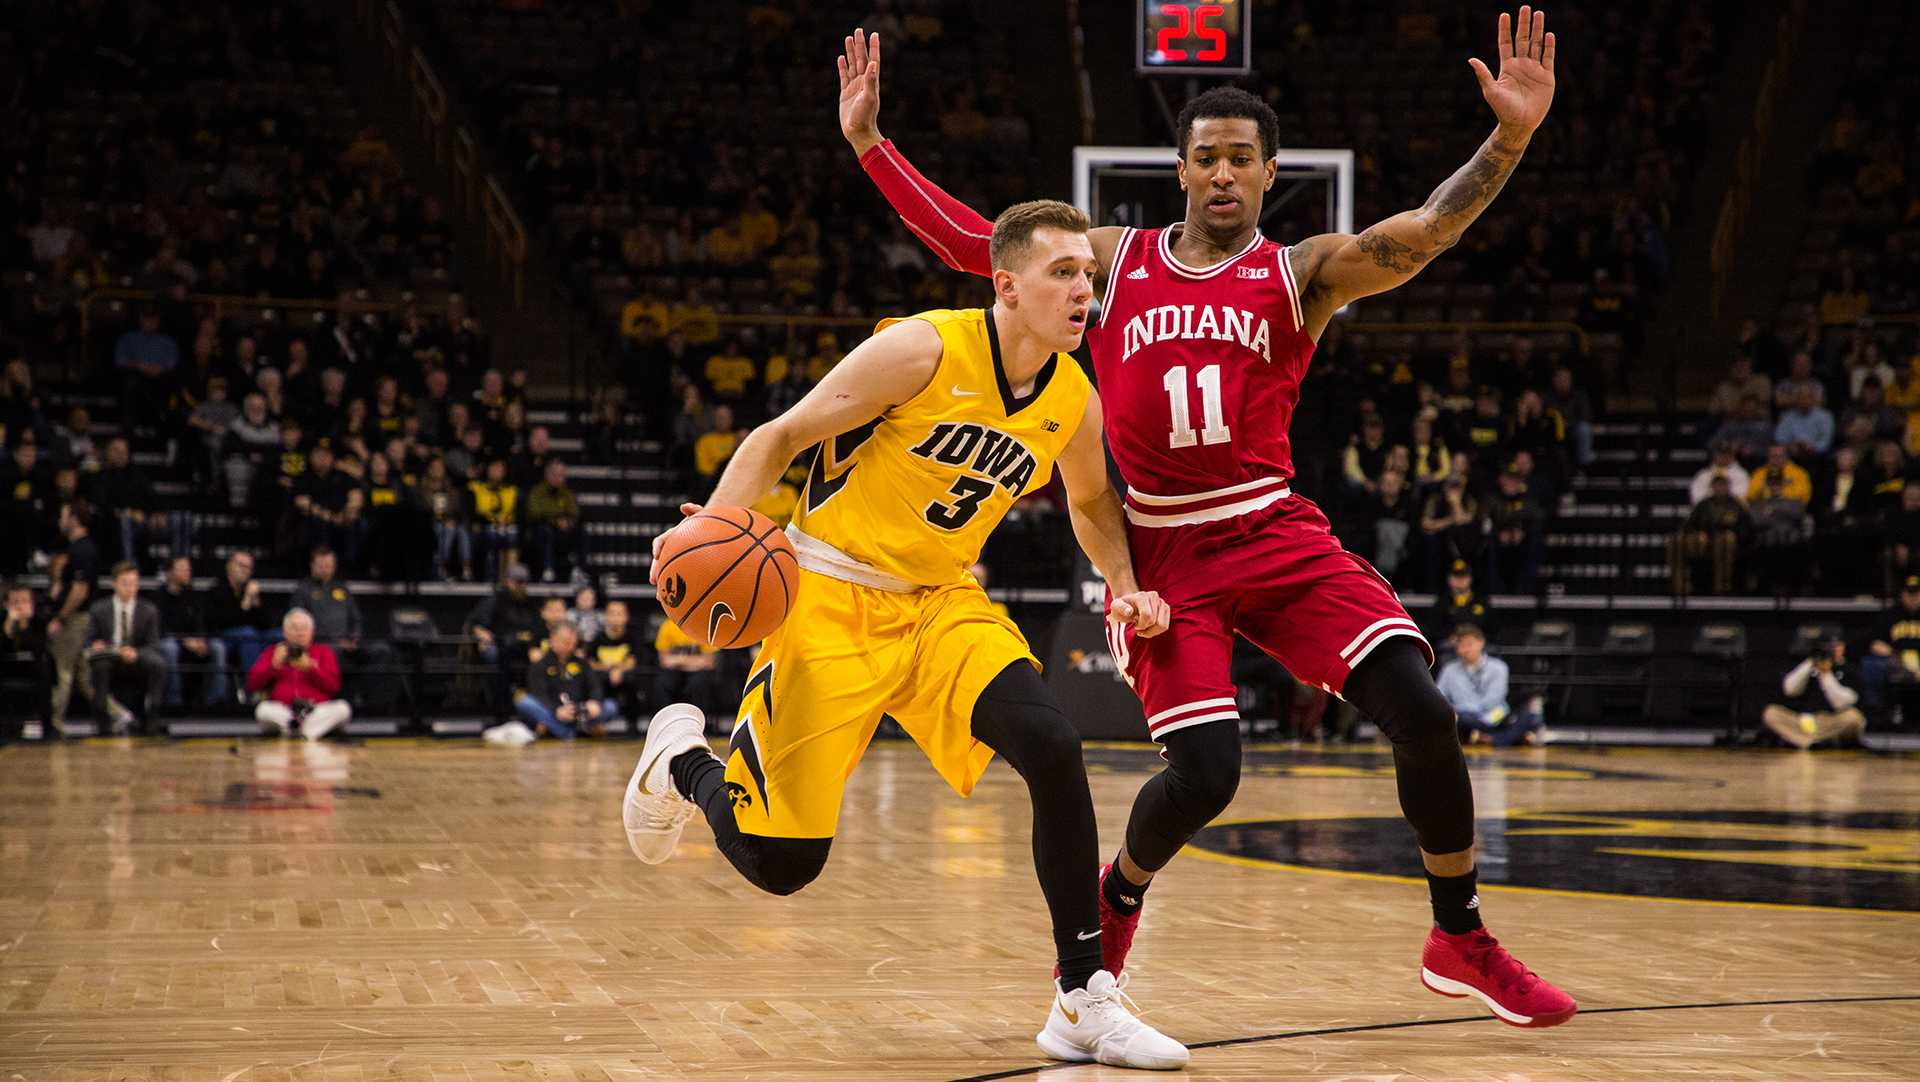 Iowa guard Jordan Bohannon drives the ball up court against Indiana University at Carver-Hawkeye Arena on Saturday, Feb. 17, 2018. The Hoosiers defeated the Hawkeyes 84 to 82. (David Harmantas/The Daily Iowan)